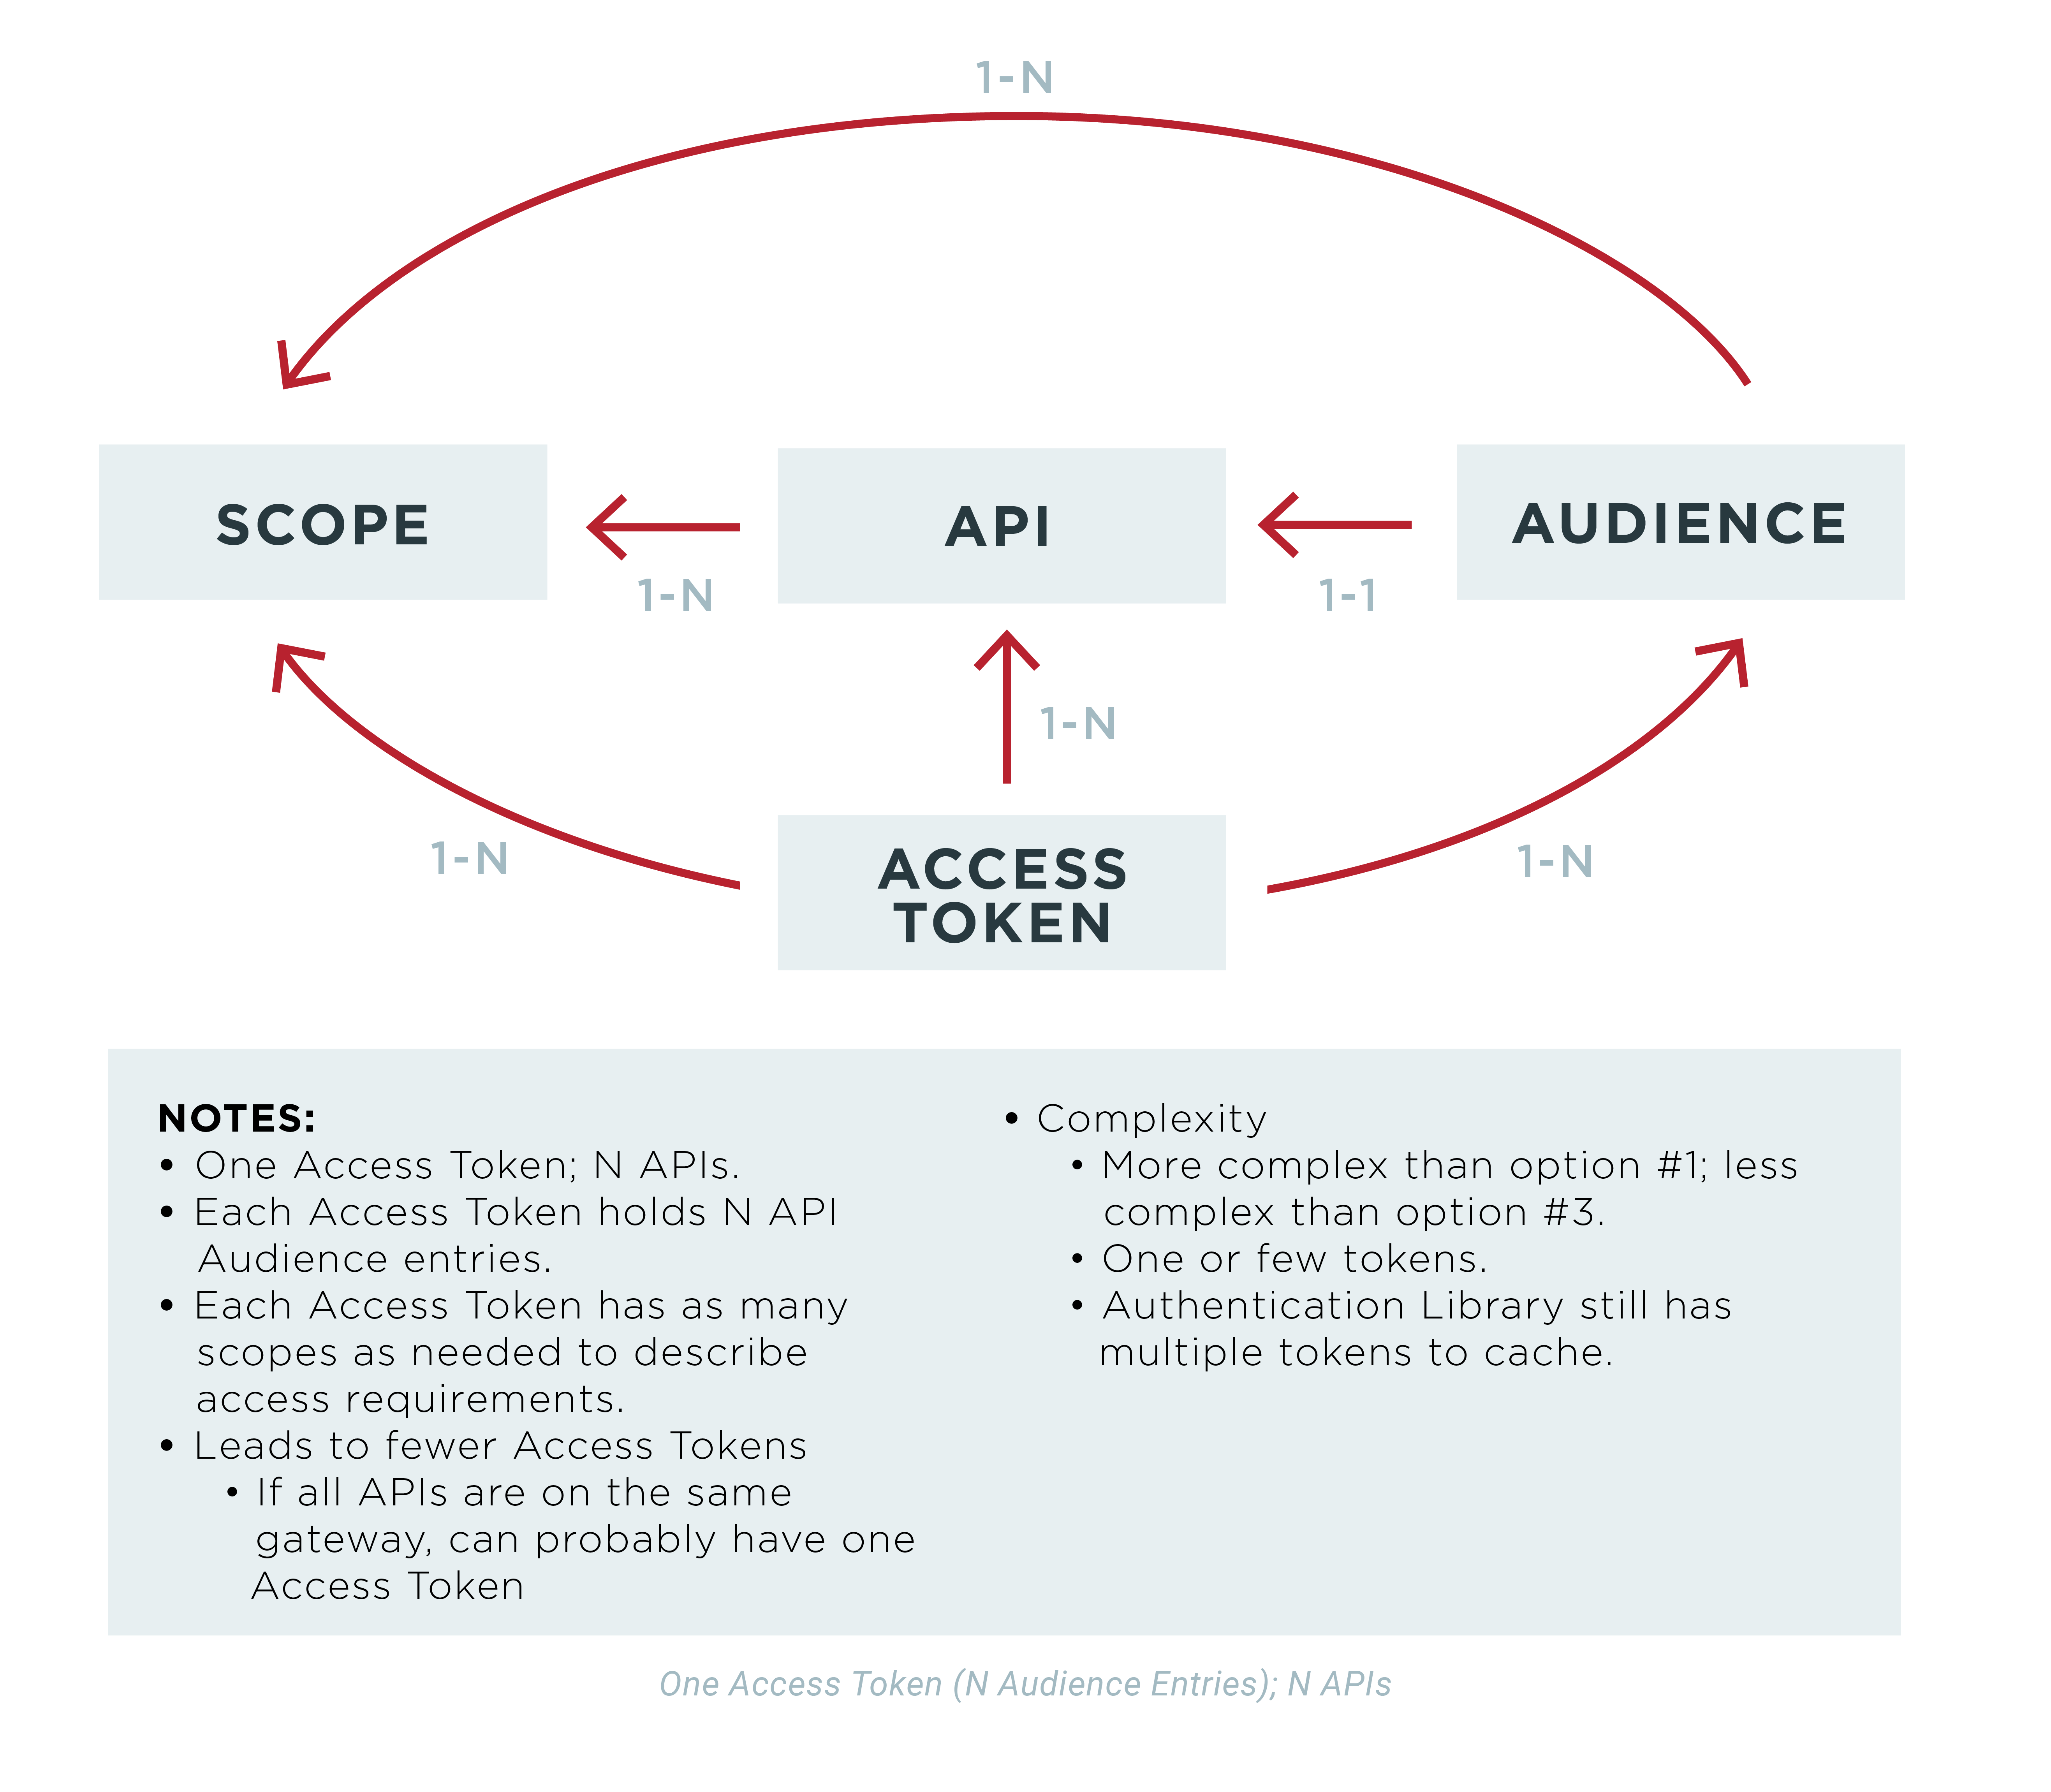 OAuth 2 Access Token Usage Strategies for Multiple Resources (APIs